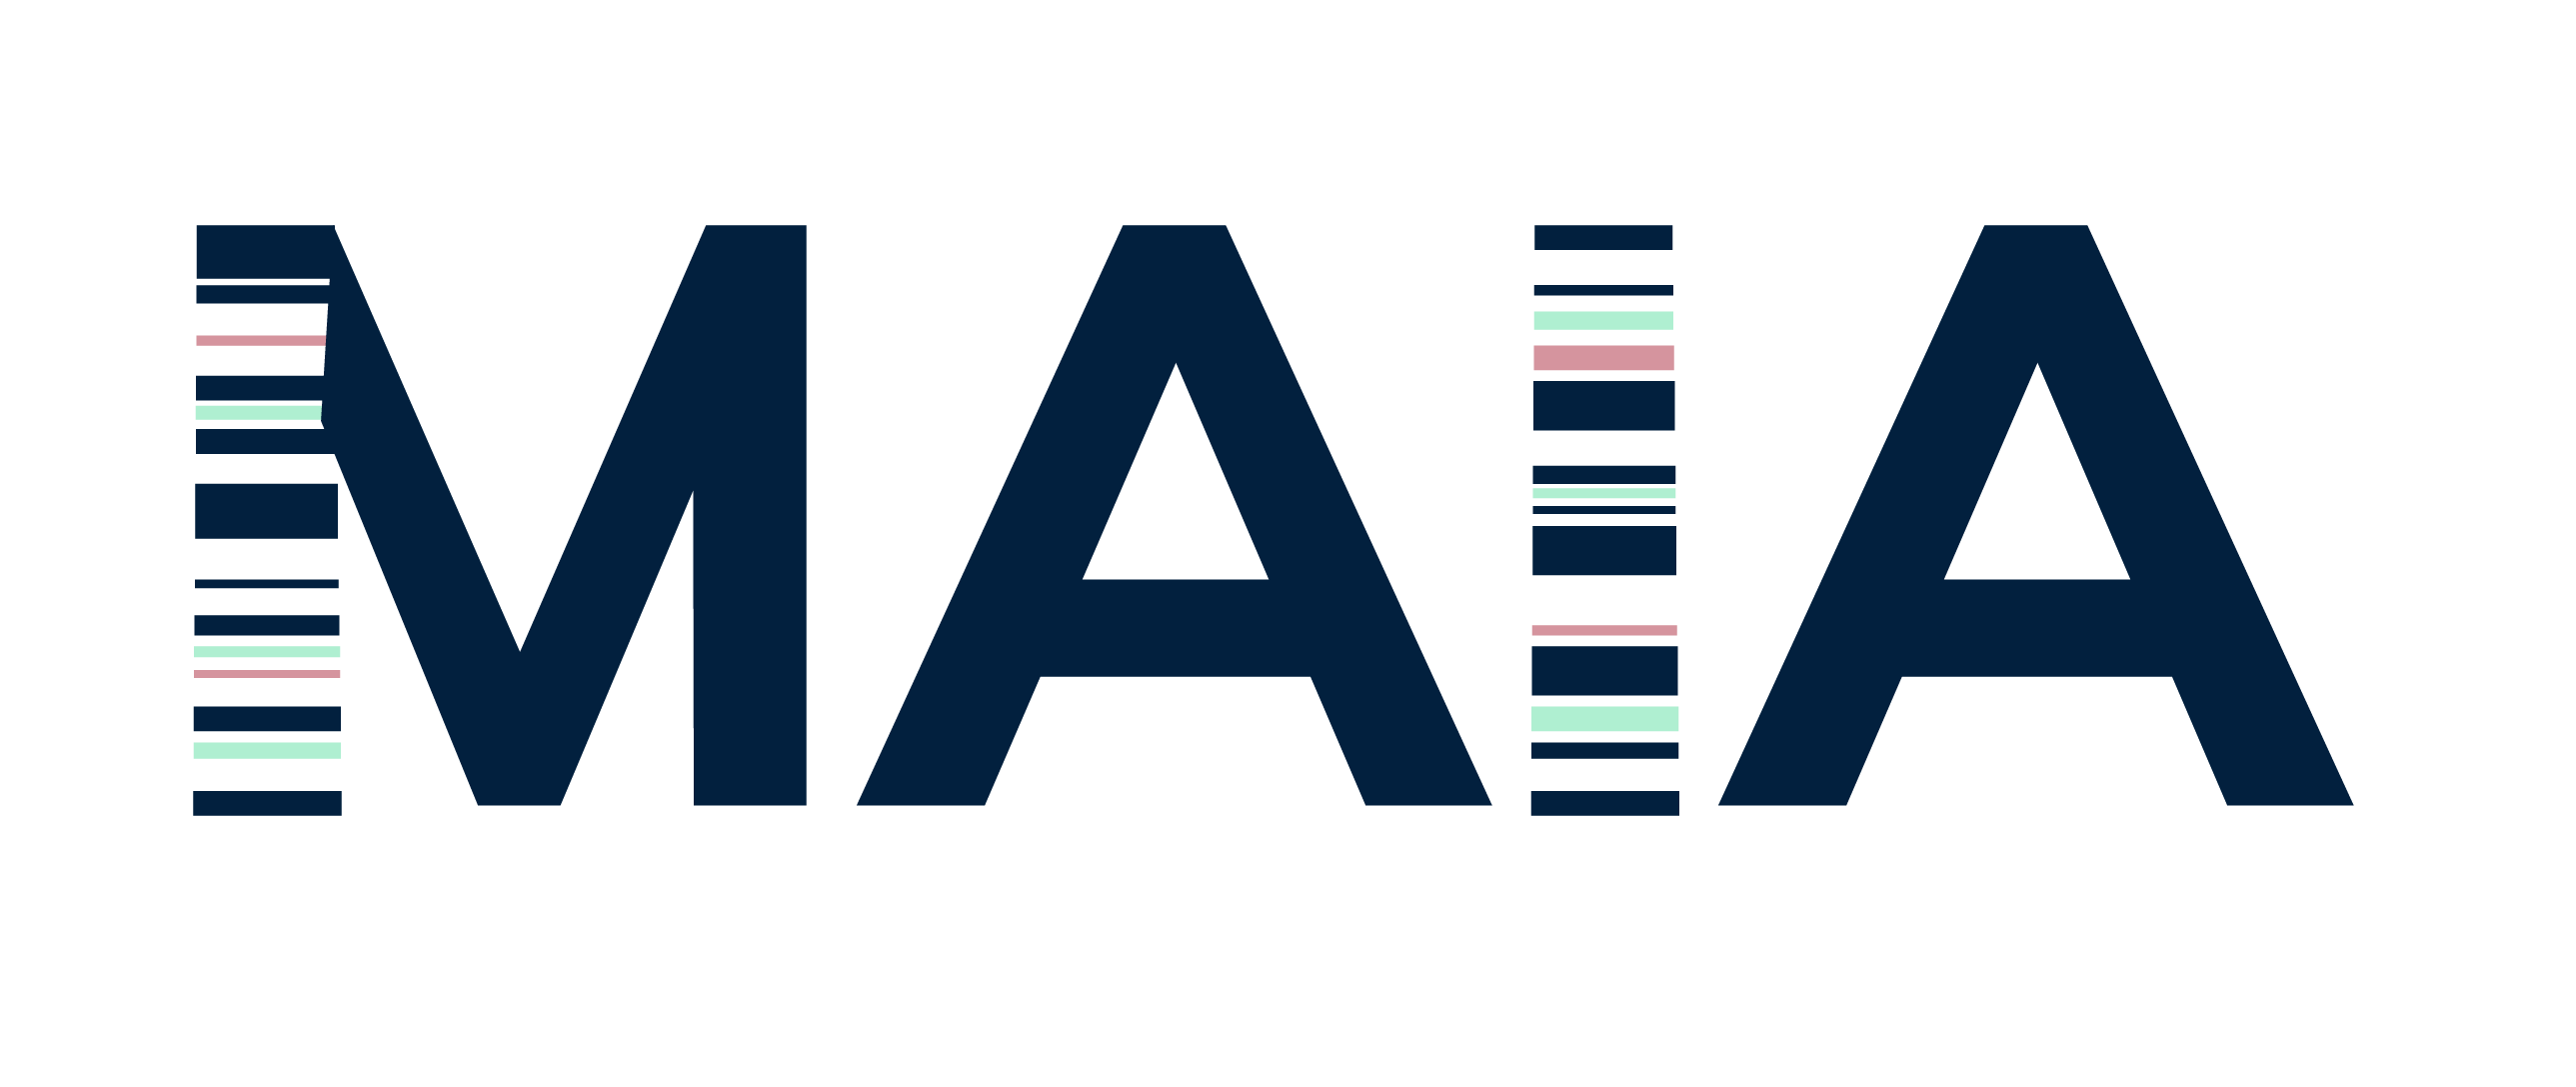 Maia's logo made up of capitalised dark blue text and lines of white, pink and light green on the I and M.